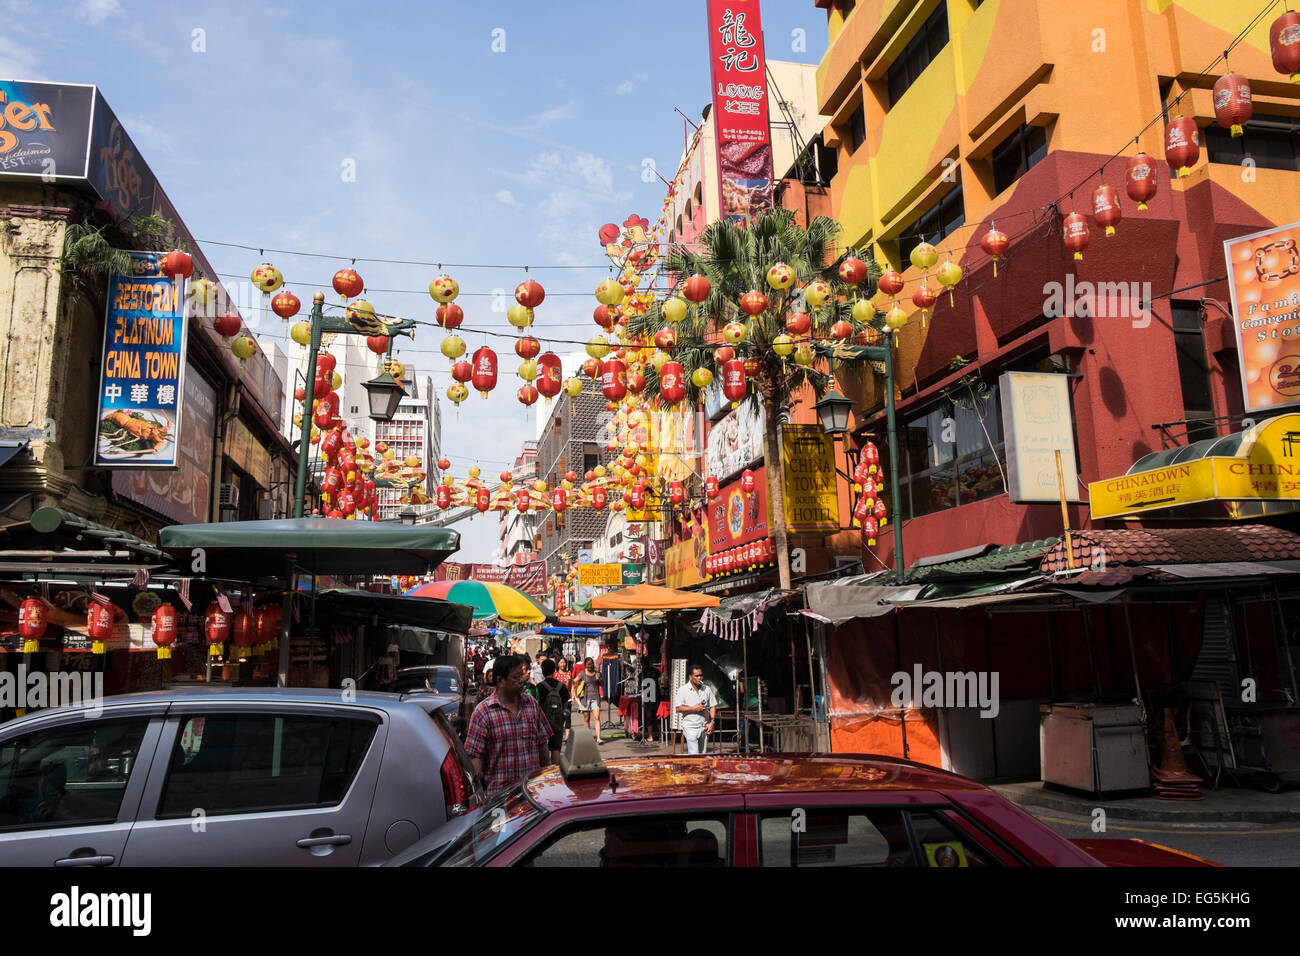 Chinatown in Kuala Lumpur decorated for the Chinese New Year celebrations, Malaysia. - Stock Image